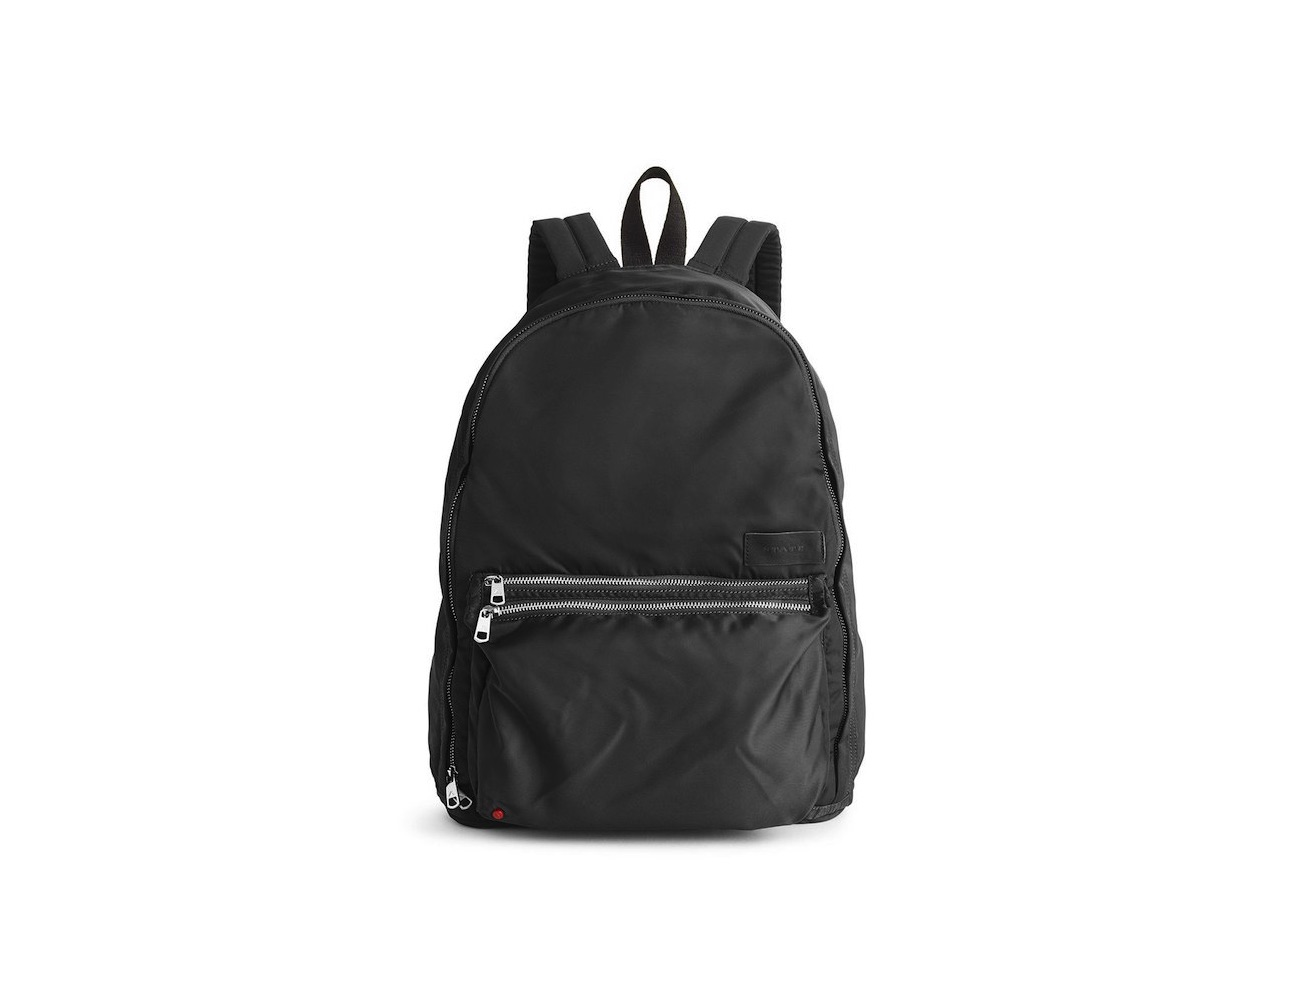 Black Lorimer Backpack – Modern Look With Cool Fashion Details